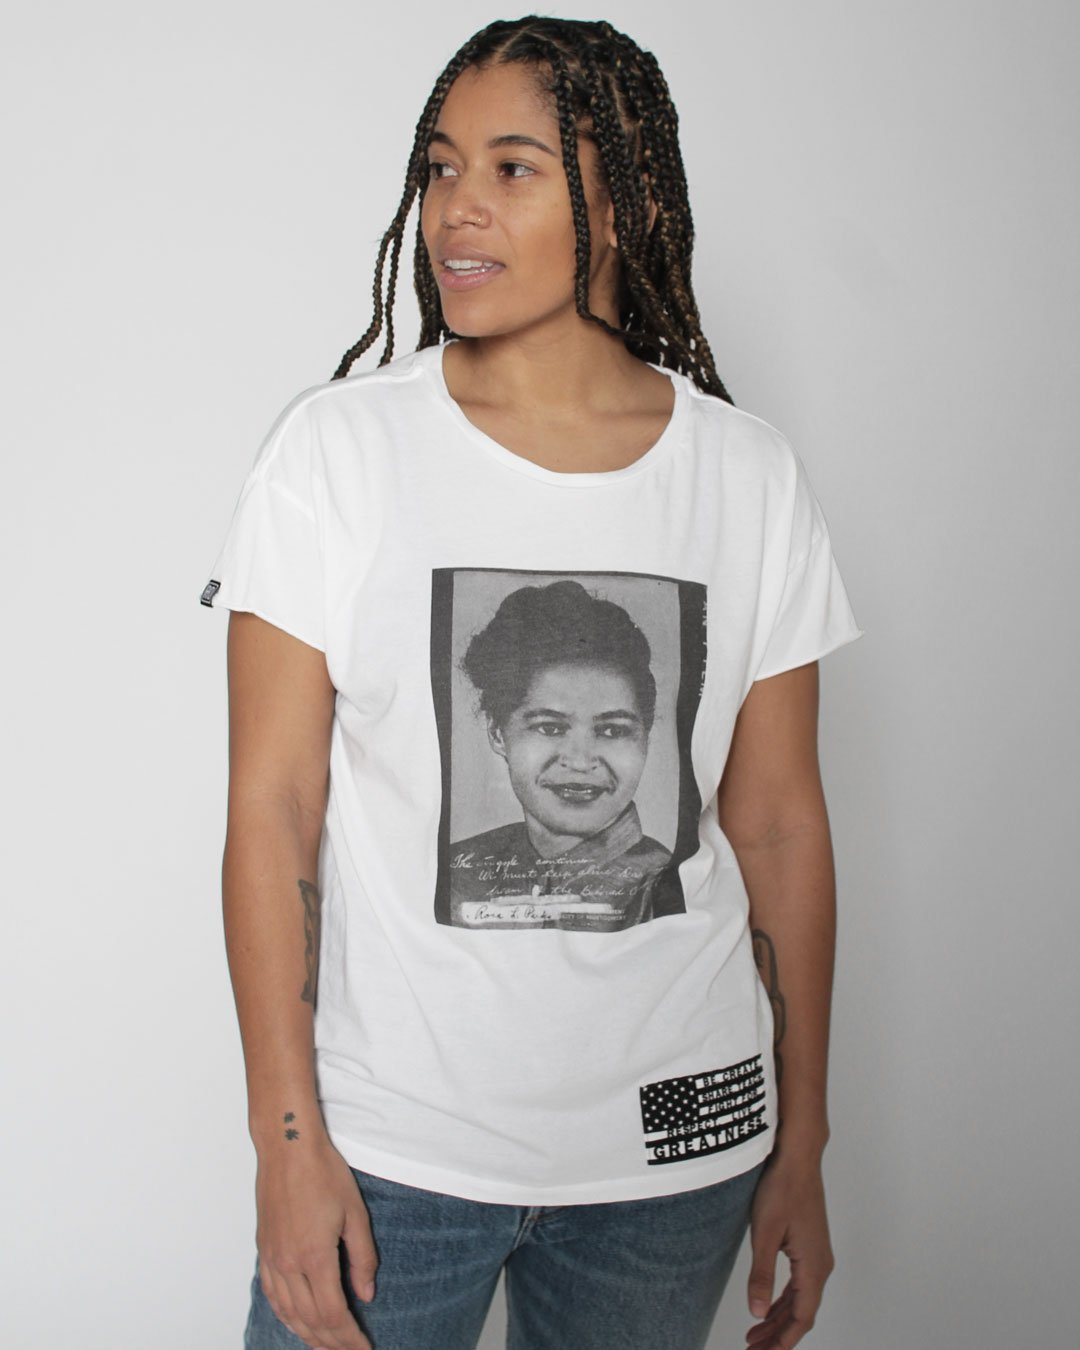 BHT - Rosa Parks Photo Women's Tee - Roots of Inc dba Roots of Fight